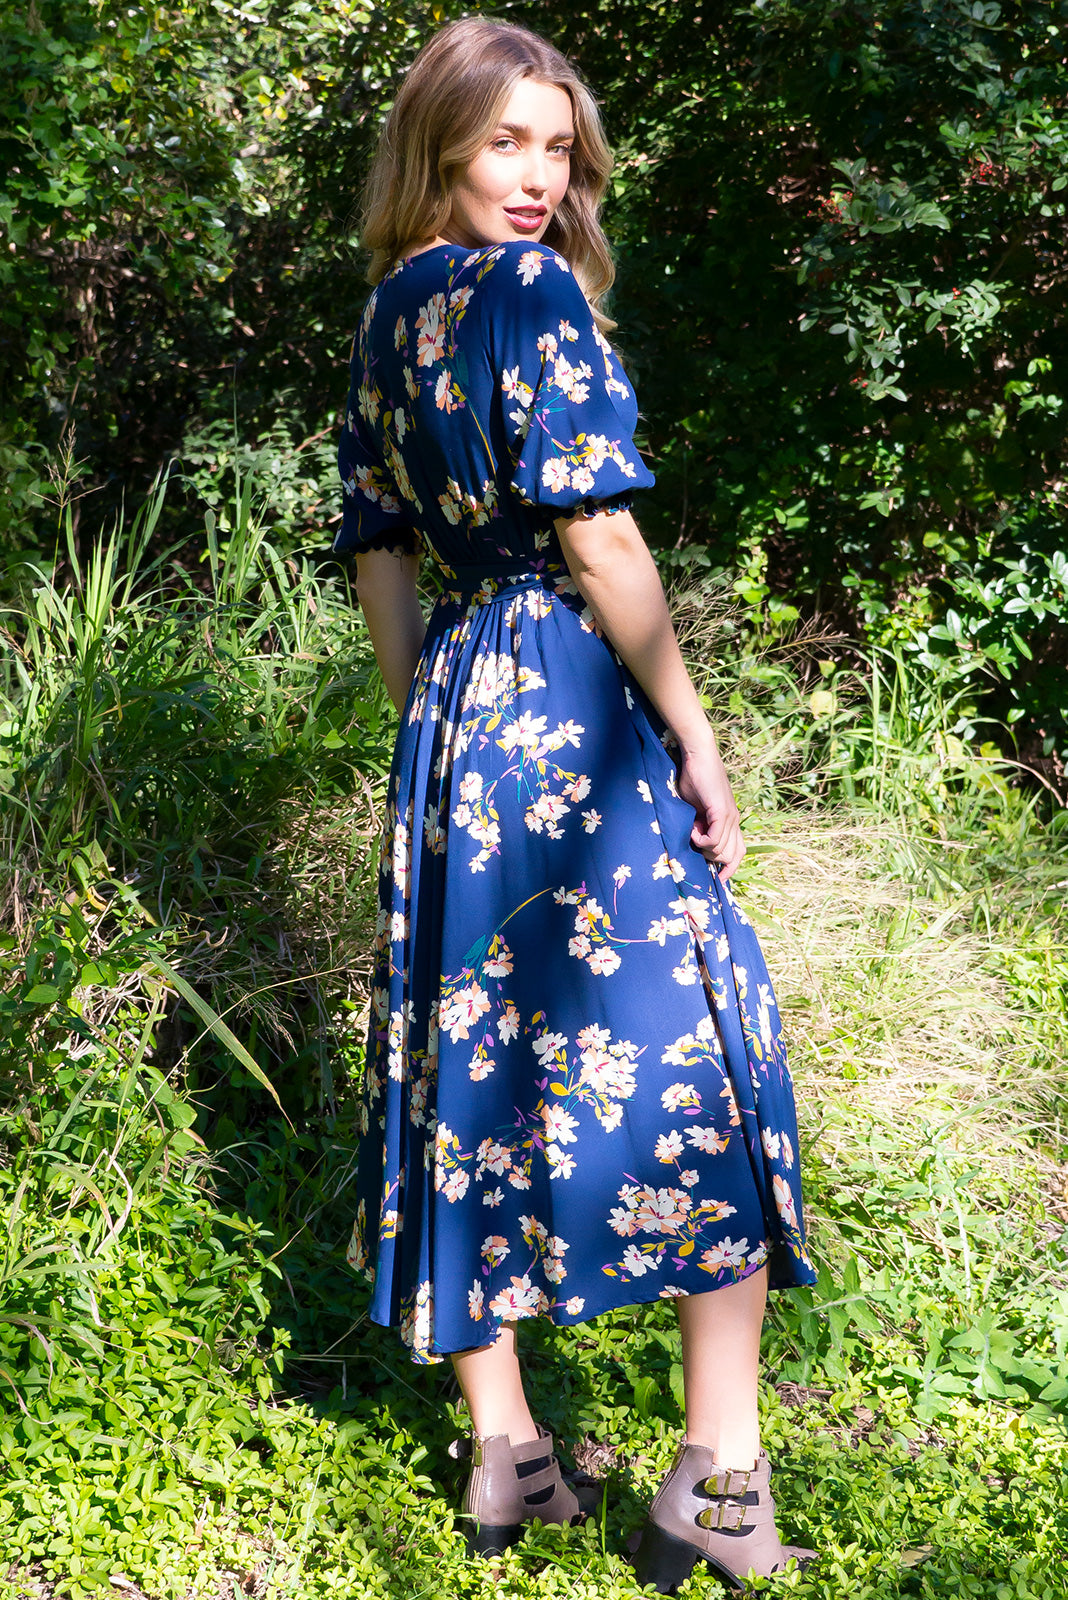 Primrose Oceans Navy Dress is made from 100% Rayon. Functional button down front in a vintage patterned fabric. Gorgeous deep navy. Comes with deep pockets. Flattering flowy skirt, very soft and comfortable. Retro Inspired.